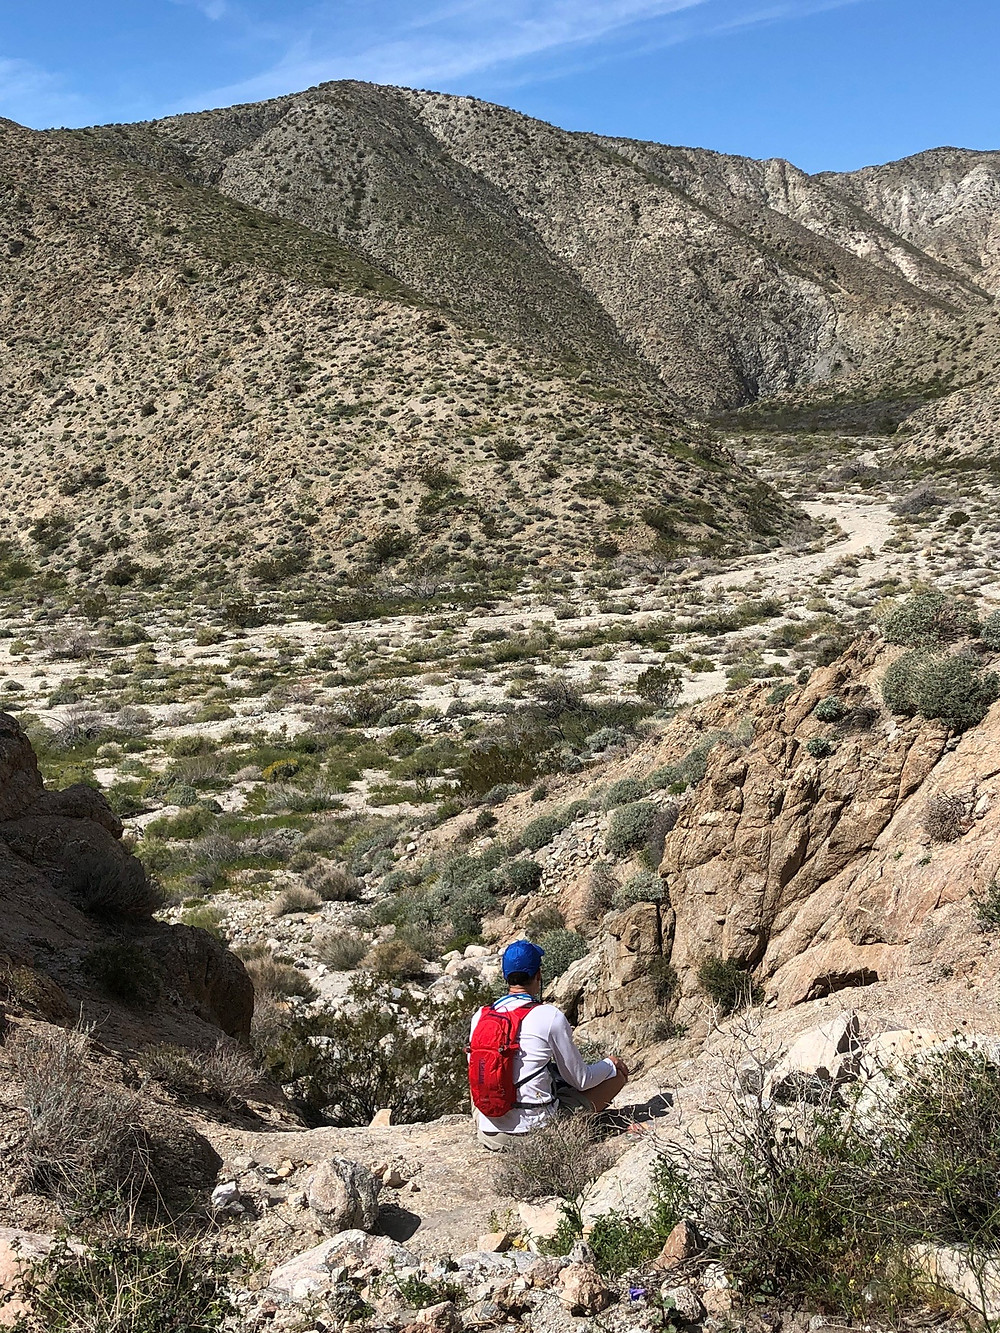 Lunch time spot along the ridge of the Big Morongo Canyon Trail in the Little San Bernardino Mountains in Morongo Valley